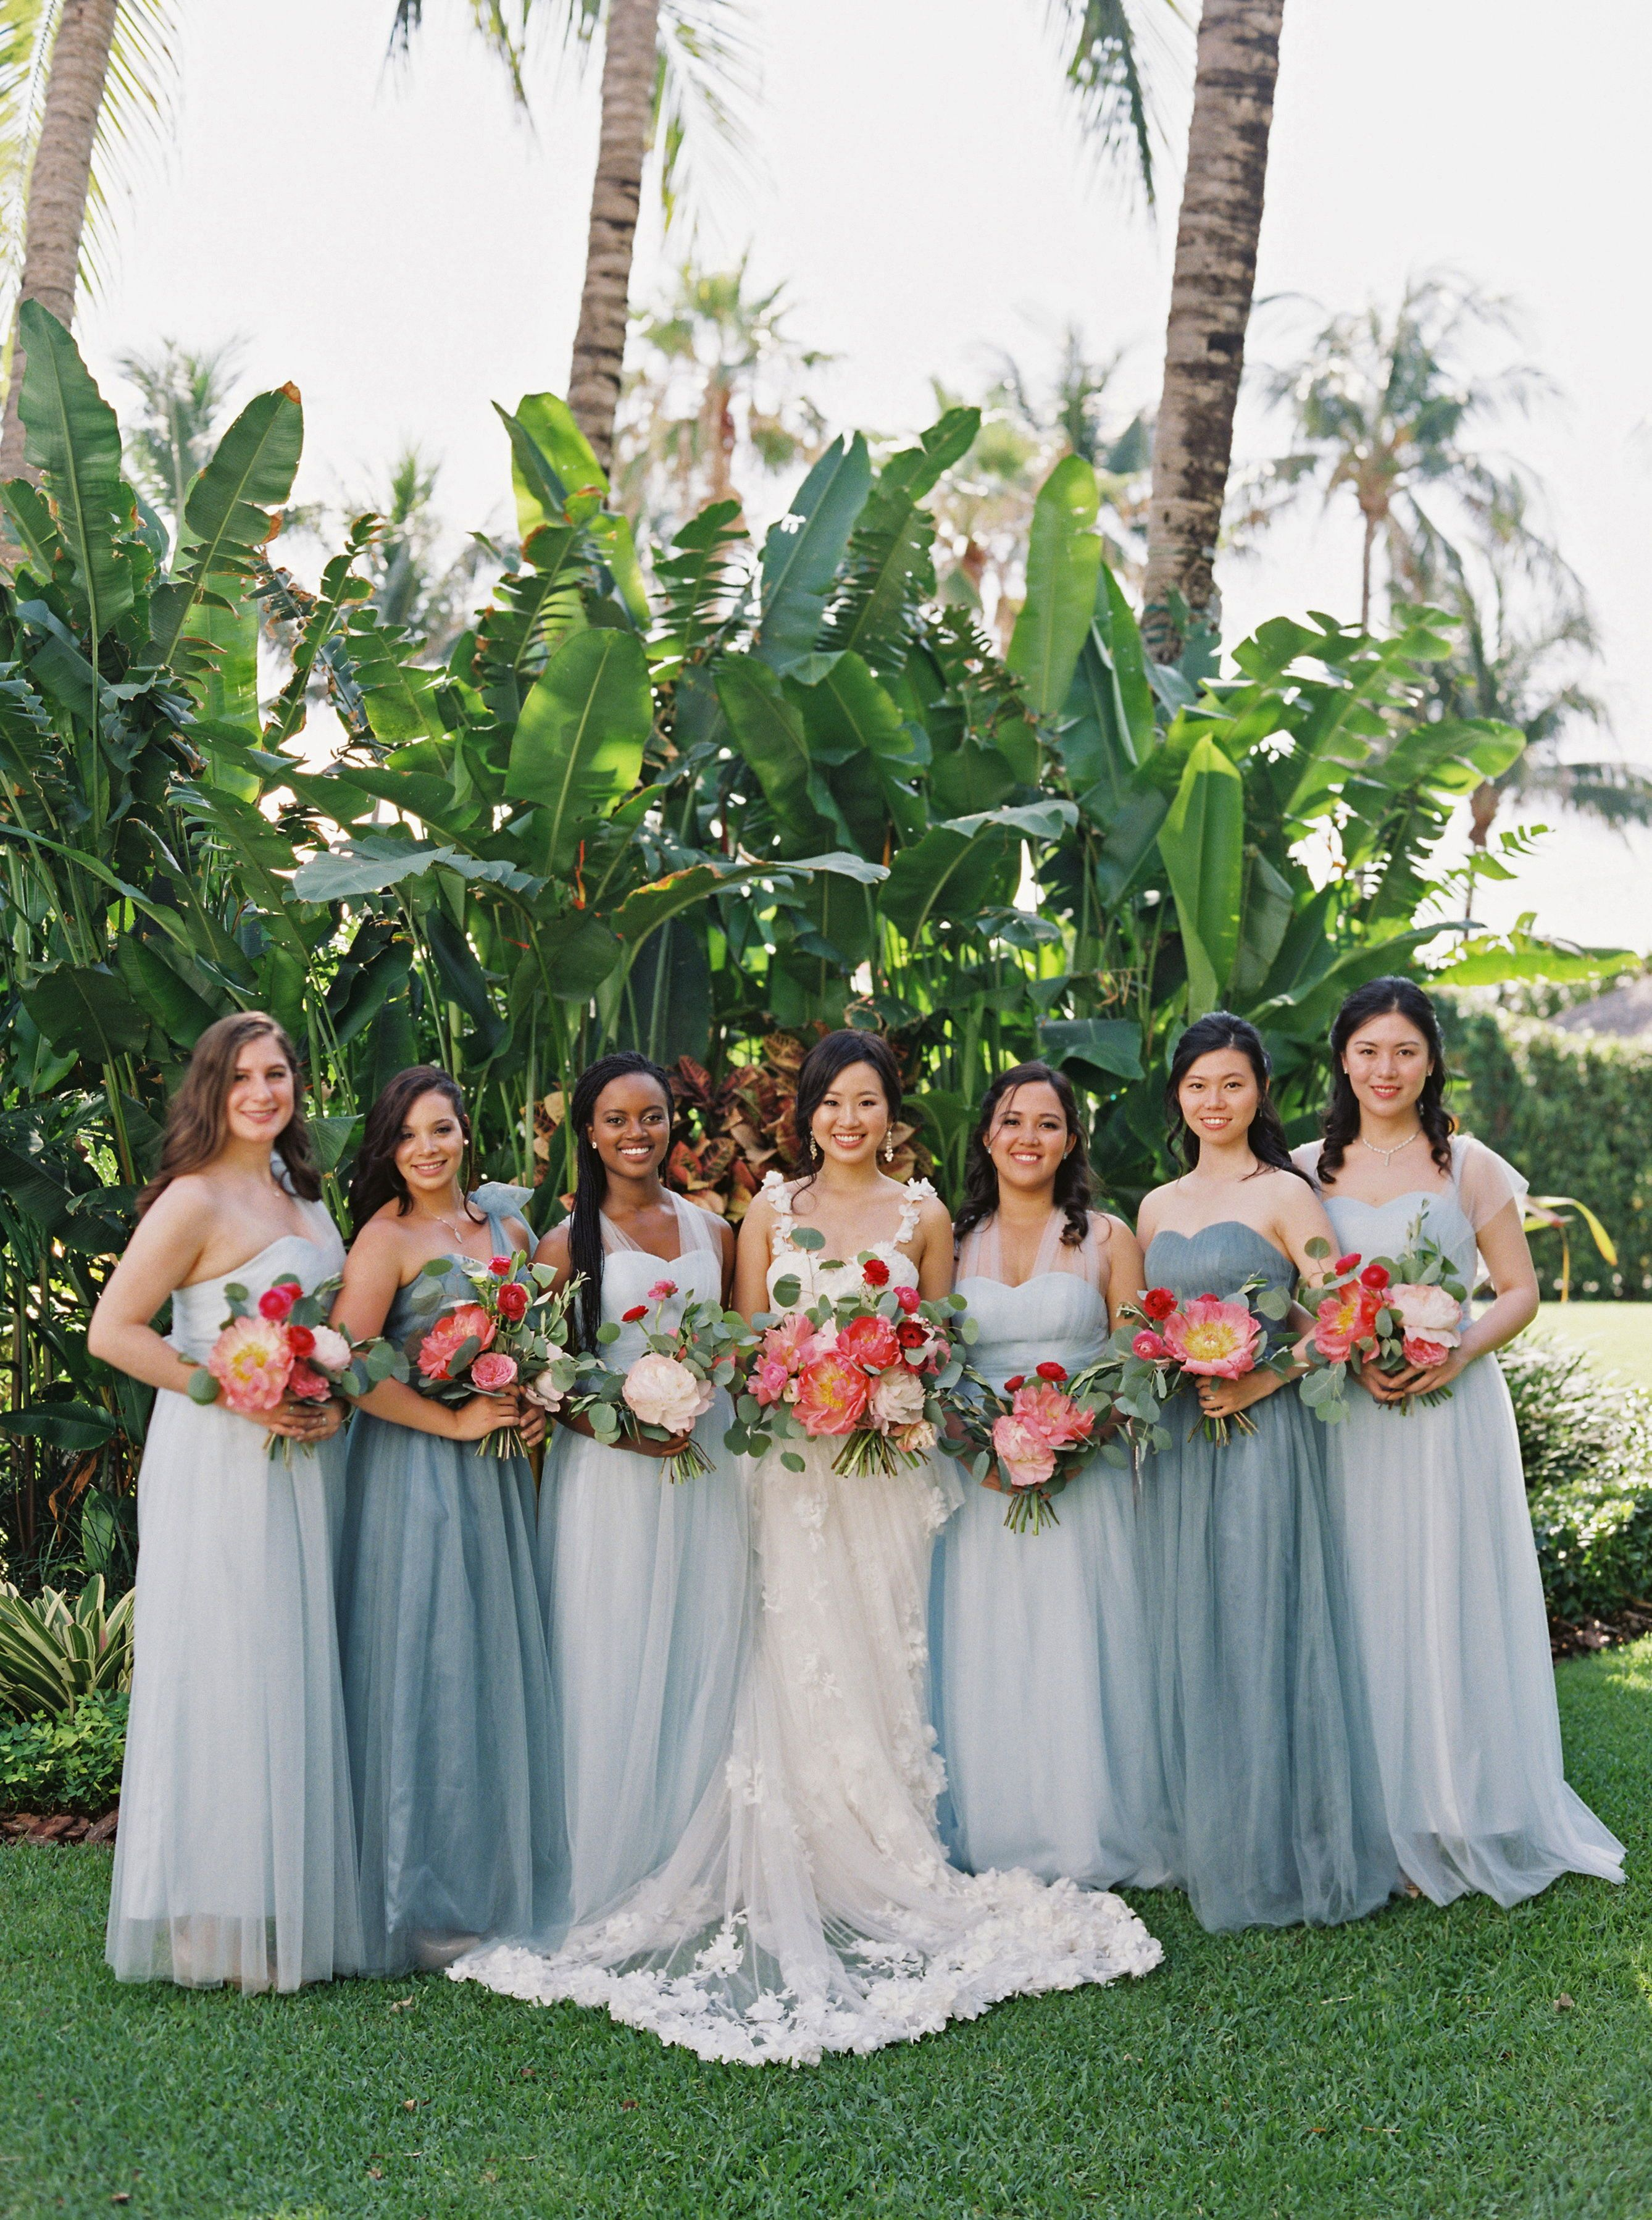 28 Reasons To Love The Mismatched Bridesmaids Dress Look Winter Bridesmaid Dresses Spring Bridesmaid Dresses Summer Bridesmaid Dresses